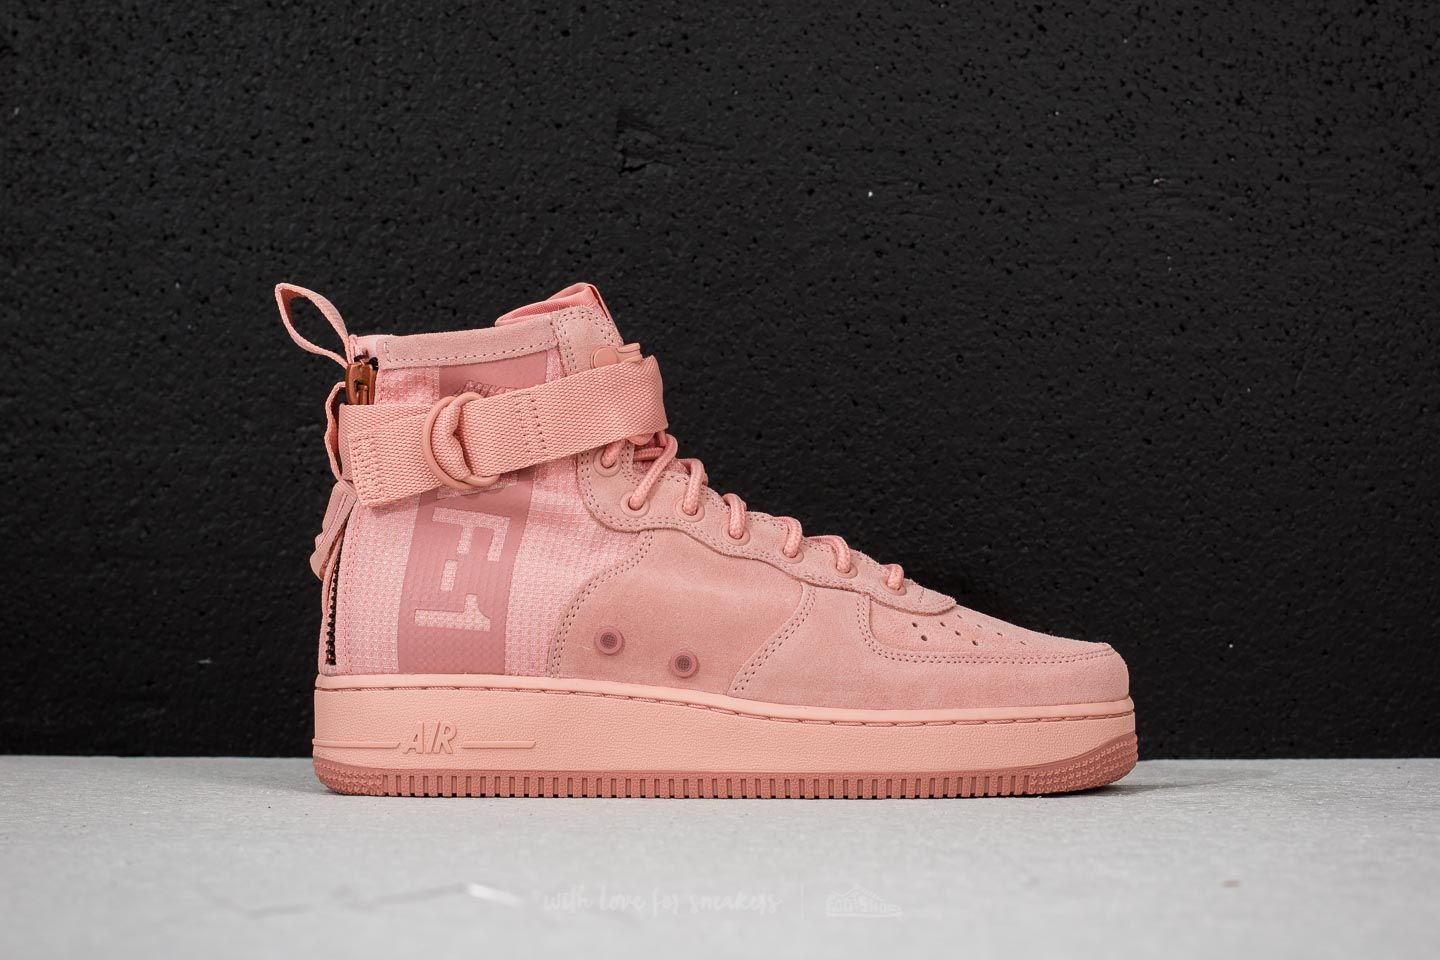 Nike SF Air Force 1 Mid Suede Coral Stardust/ Red Stardust u6JGLft3K